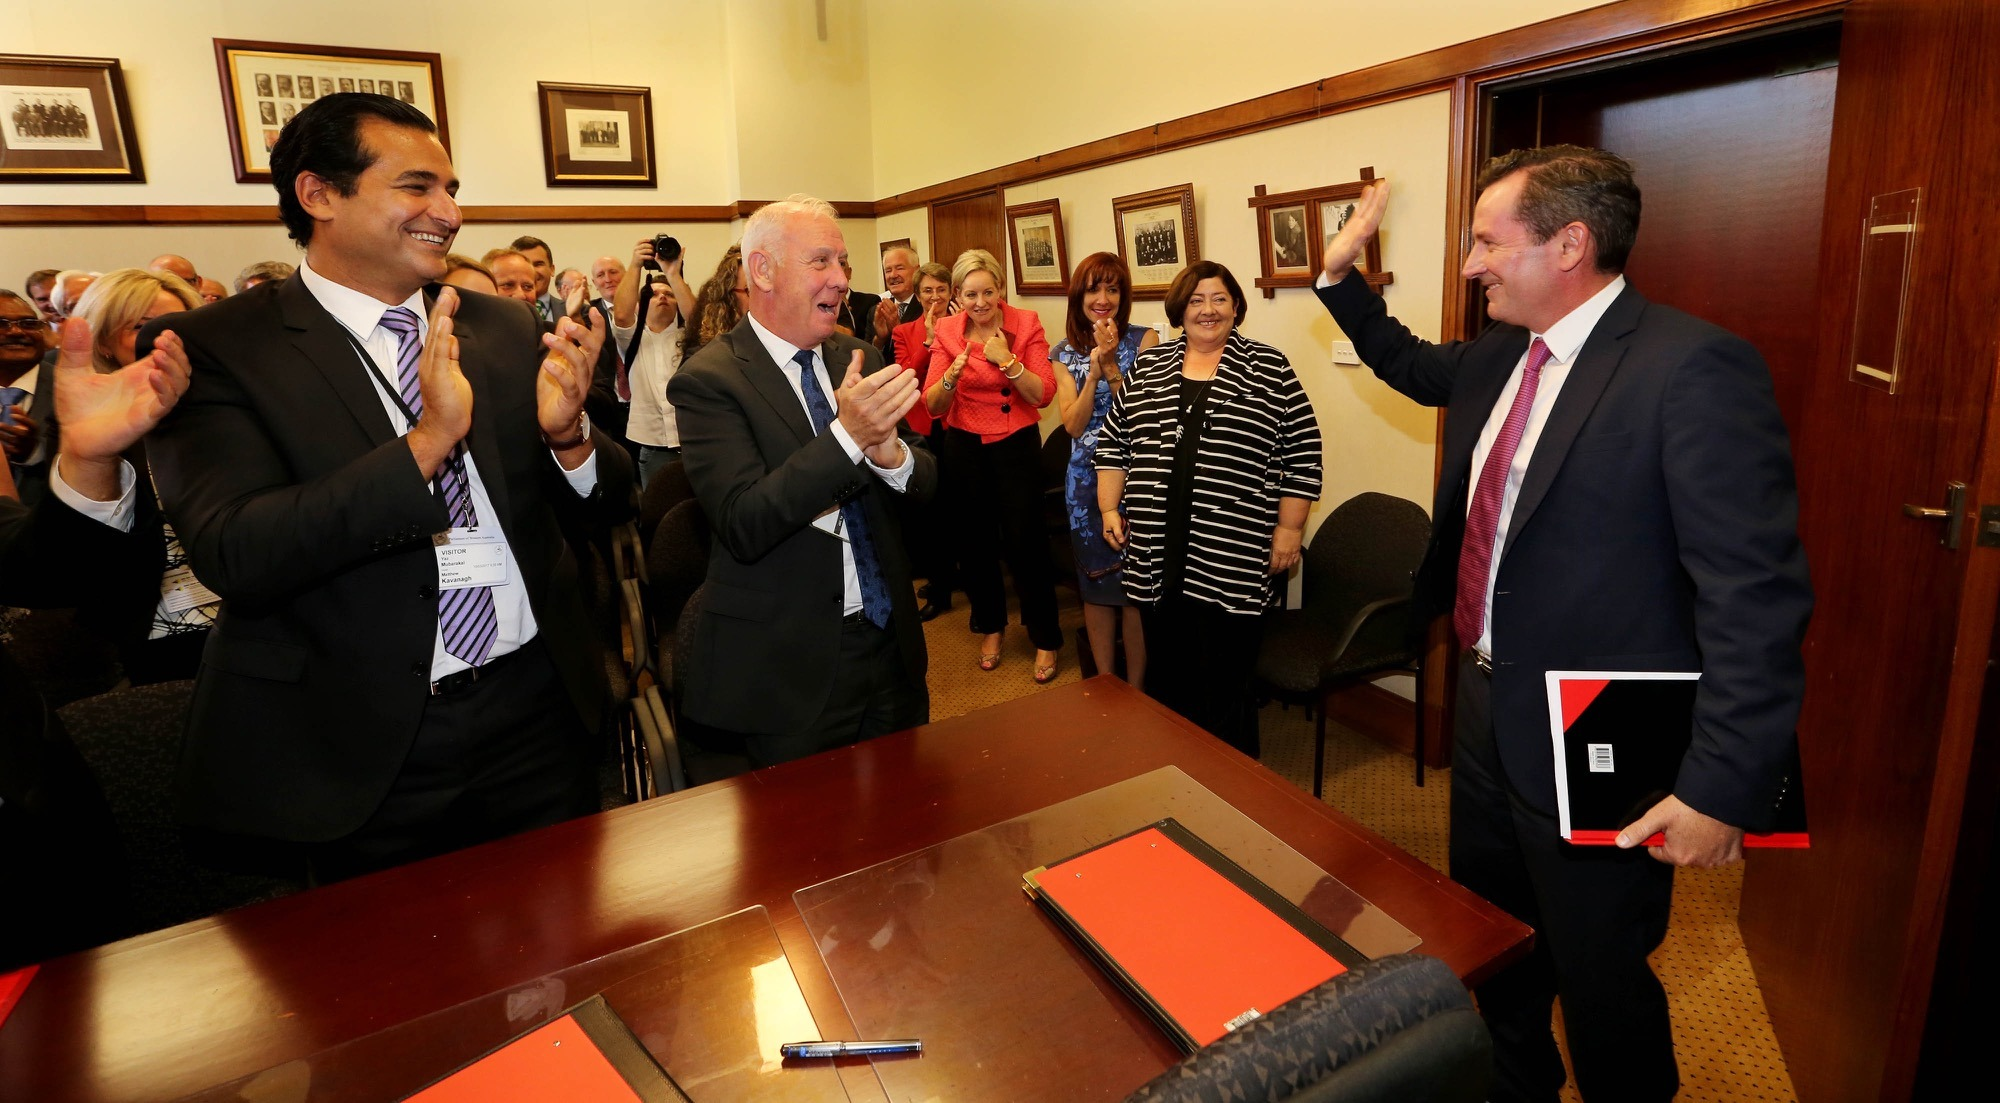 Premier elect Mark McGowan is greeted in the Labor caucus. Photo: AAP